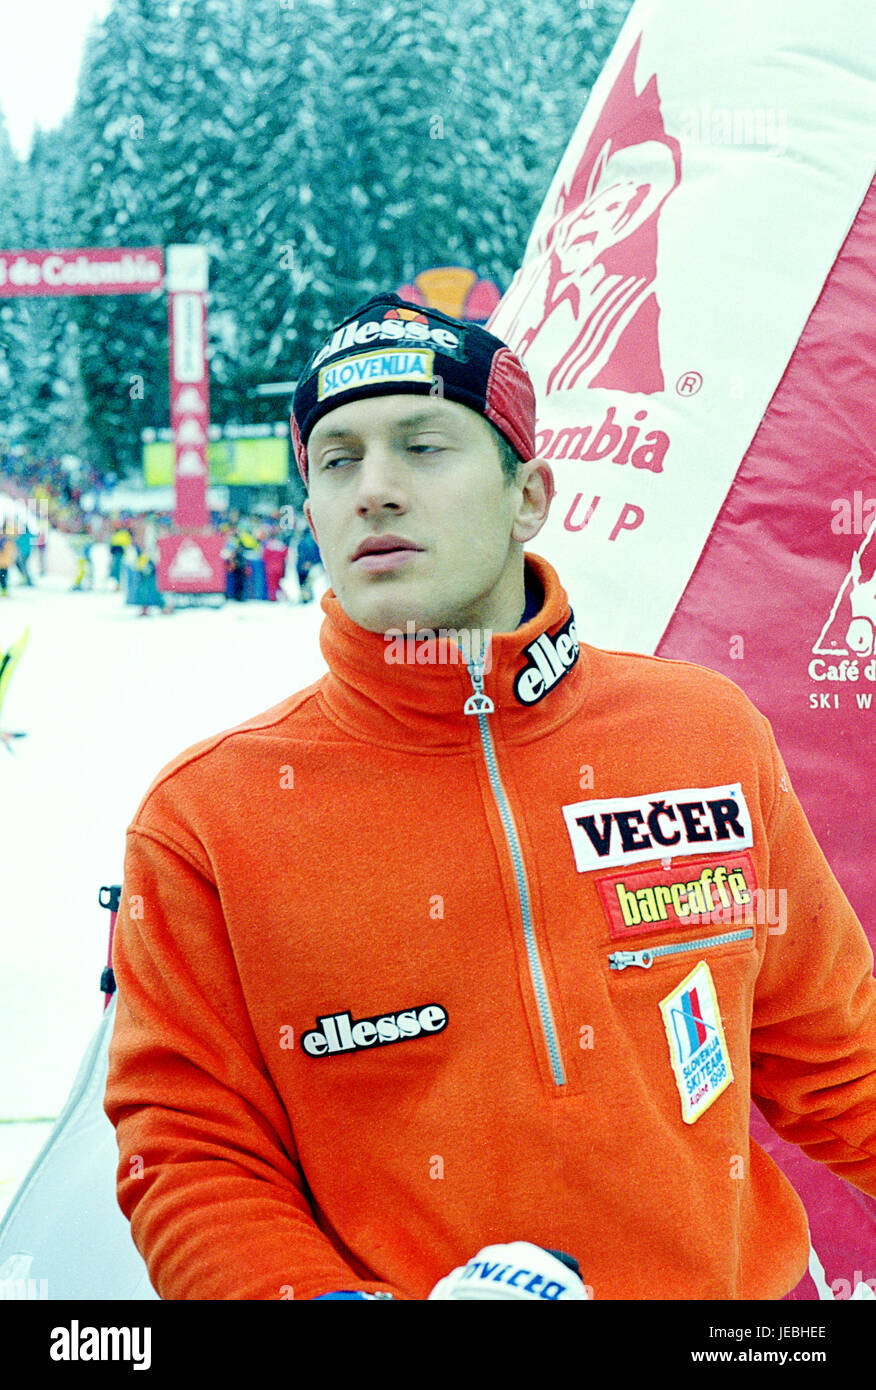 Slovenian skier Jure Kosir in Madonna di Campiglio in Italy 1997 - Stock Image